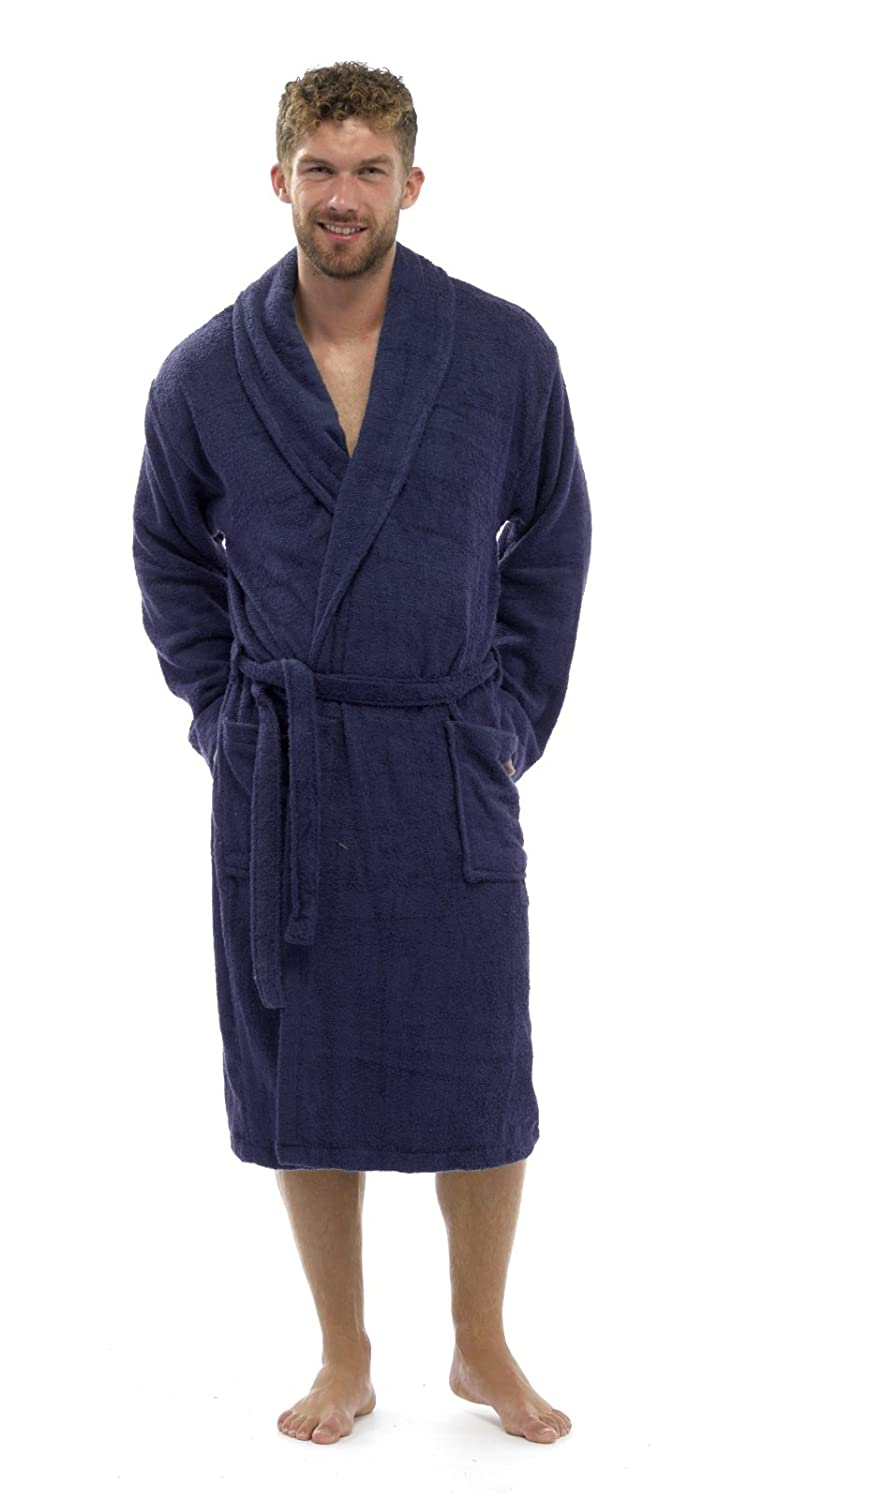 Strong Souls Mens 100% Cotton Robe Luxury Terry Towelling Bath Robes Dressing Gown Housecoat + Belt Size UK M-XL ht571